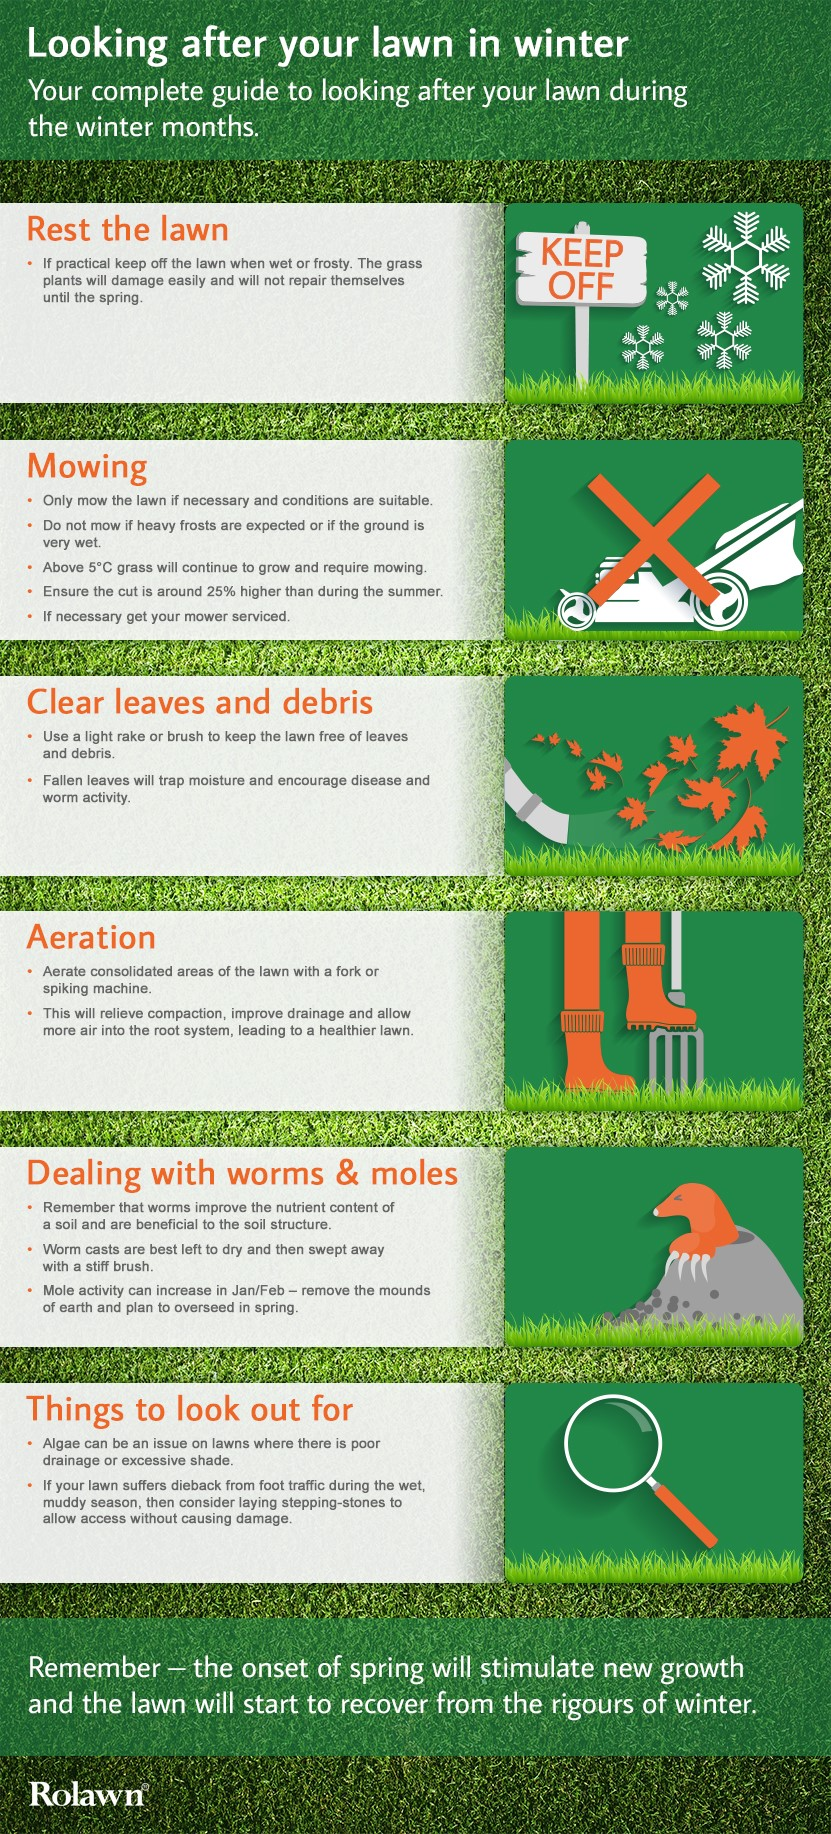 Winter Lawn Care Advice - Rolawn